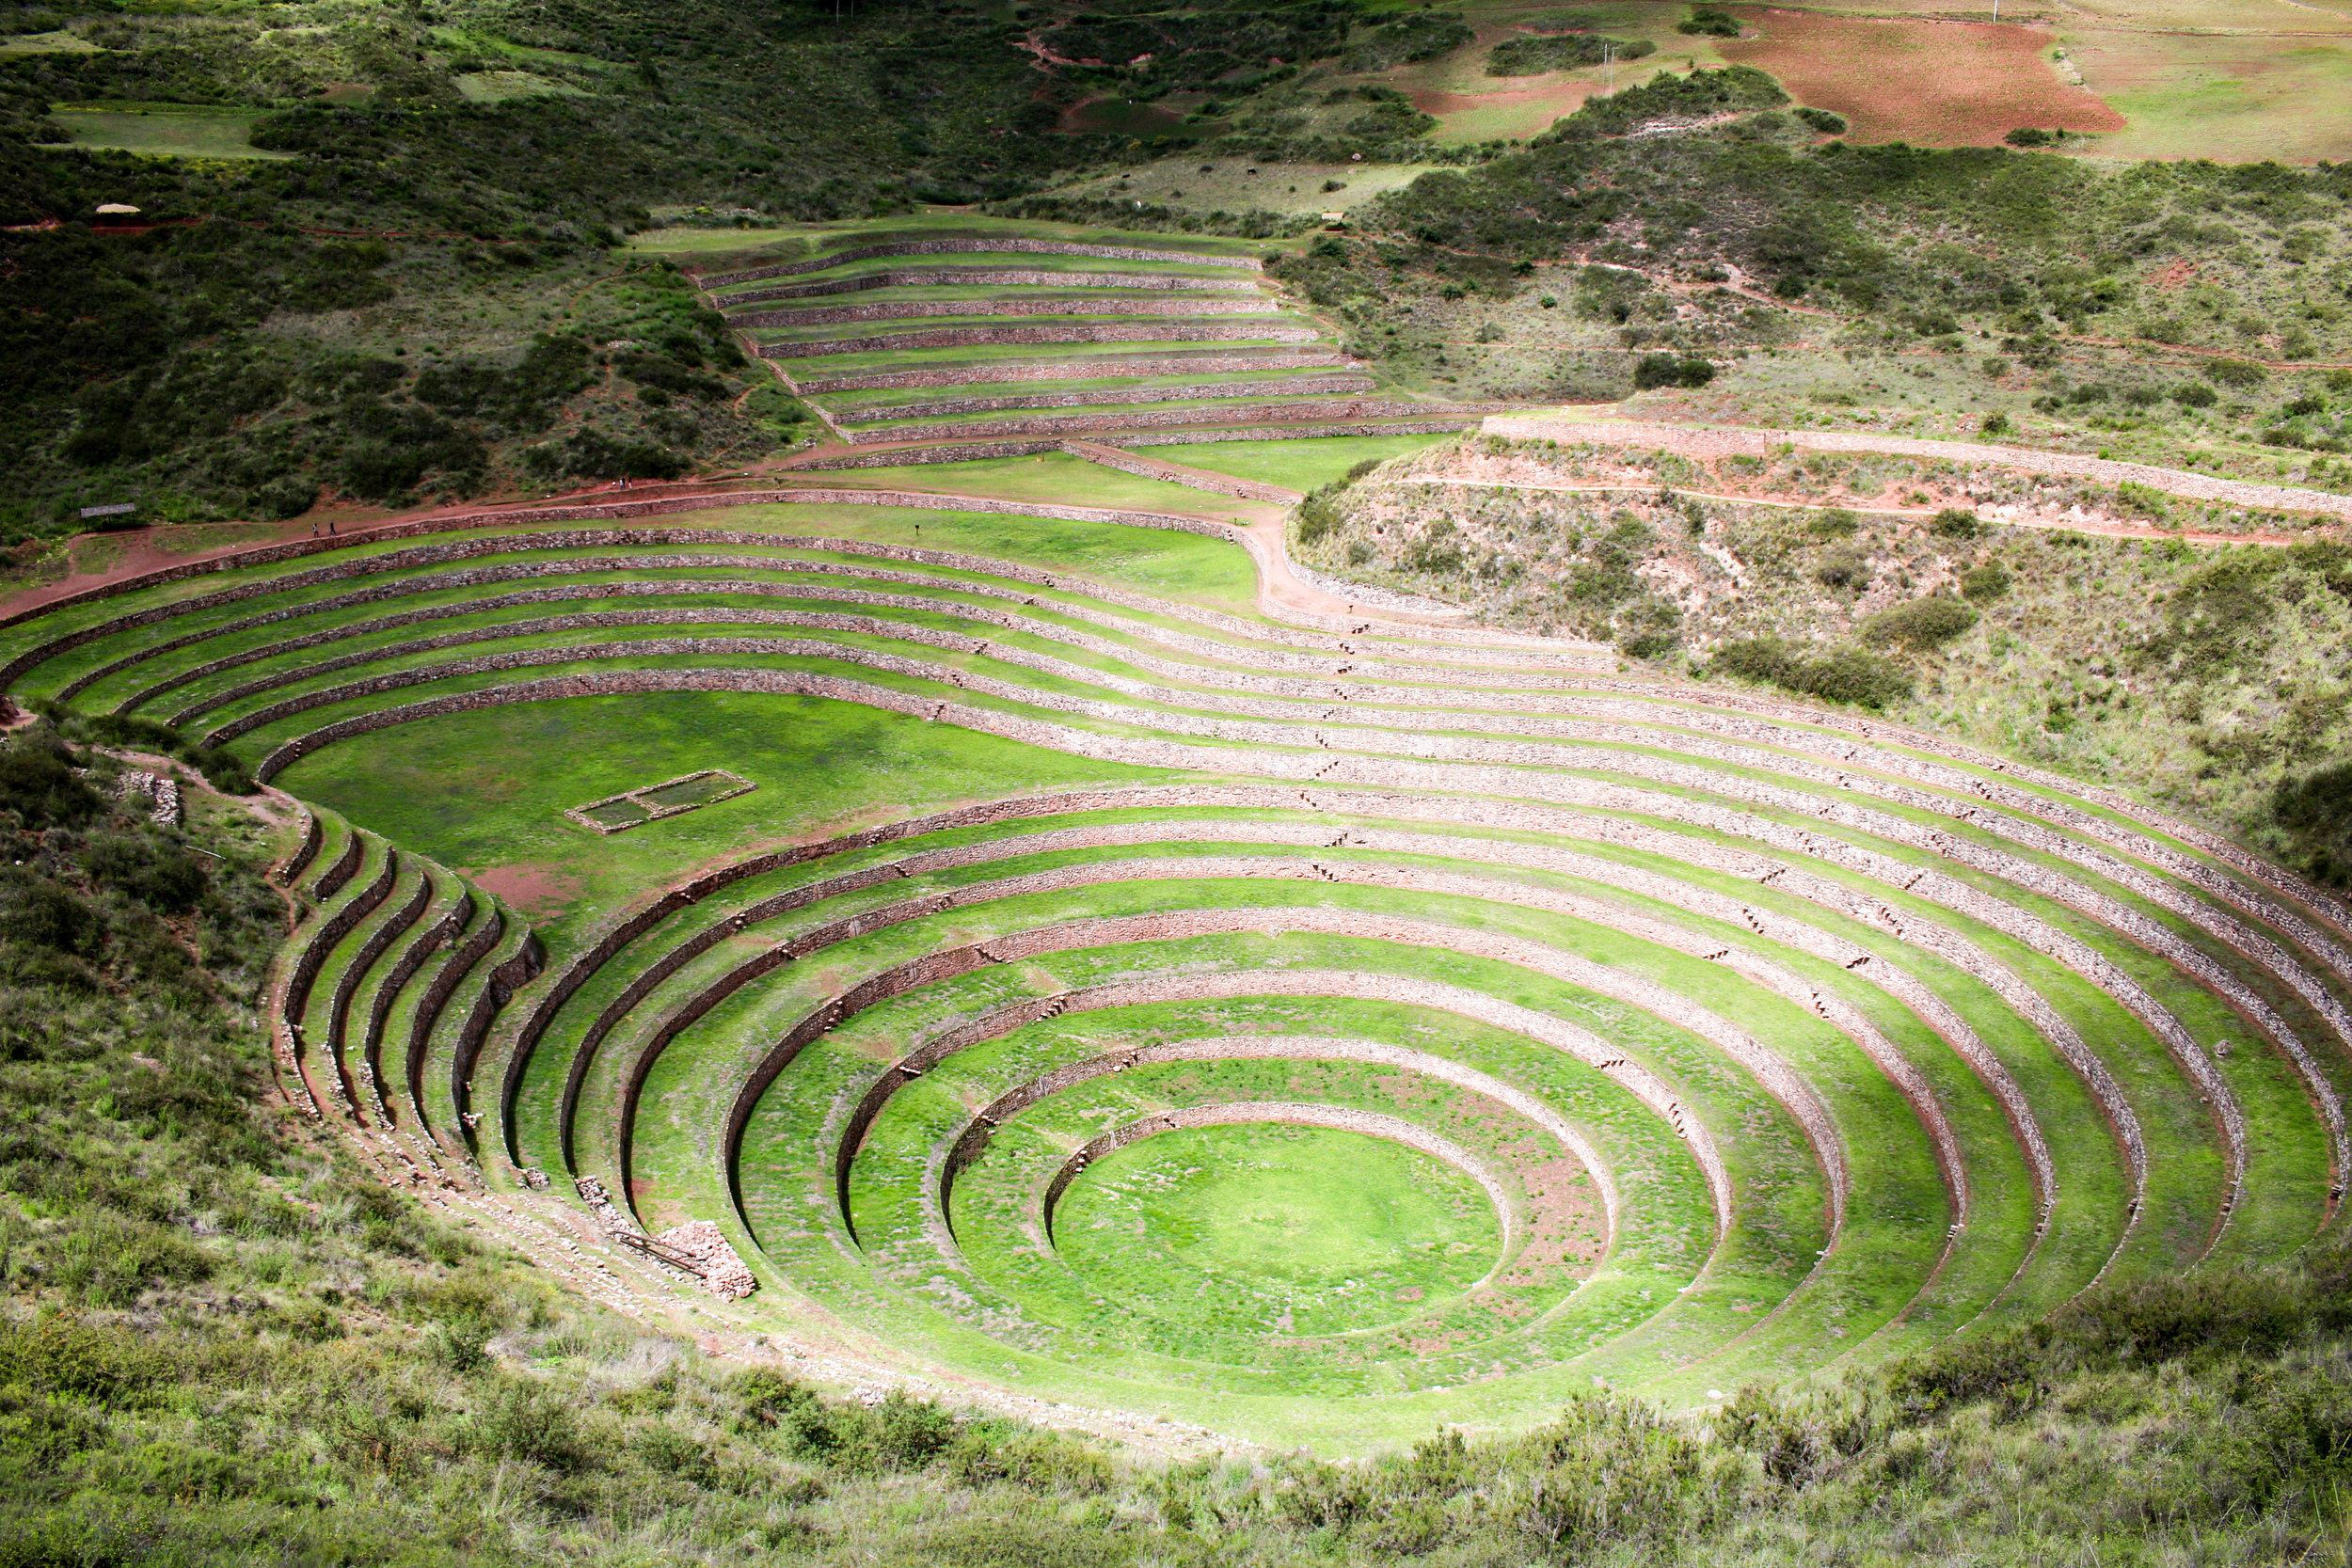 Restored Moray Terraces in the Sacred Valley, Peru